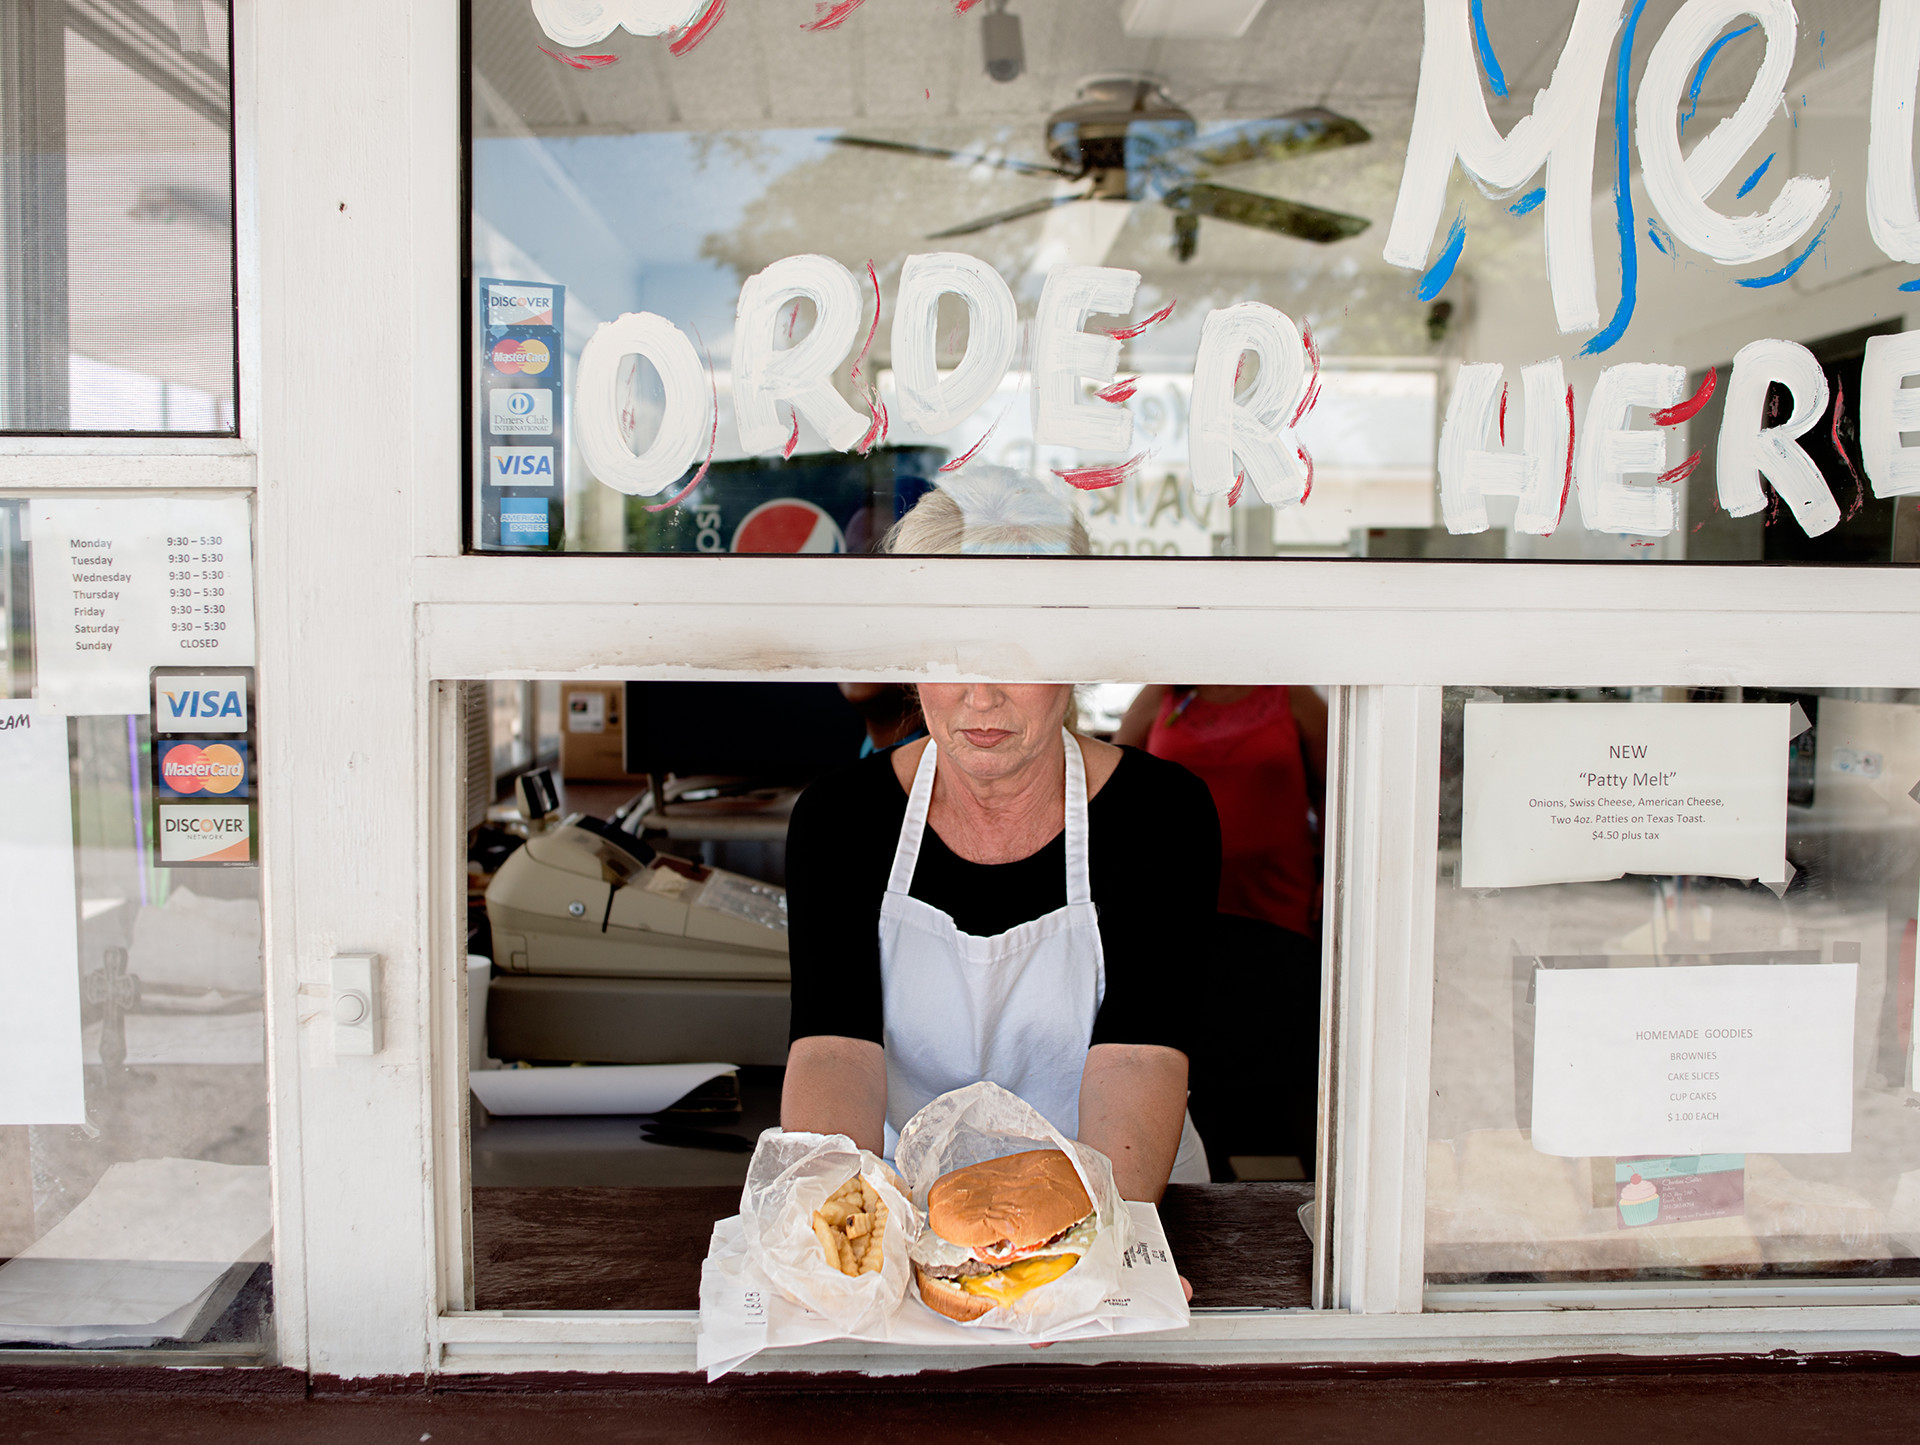 Mel's Dairy Dream,A burger and fry shack THAT sits on the property where Harper Lee's home once stood.